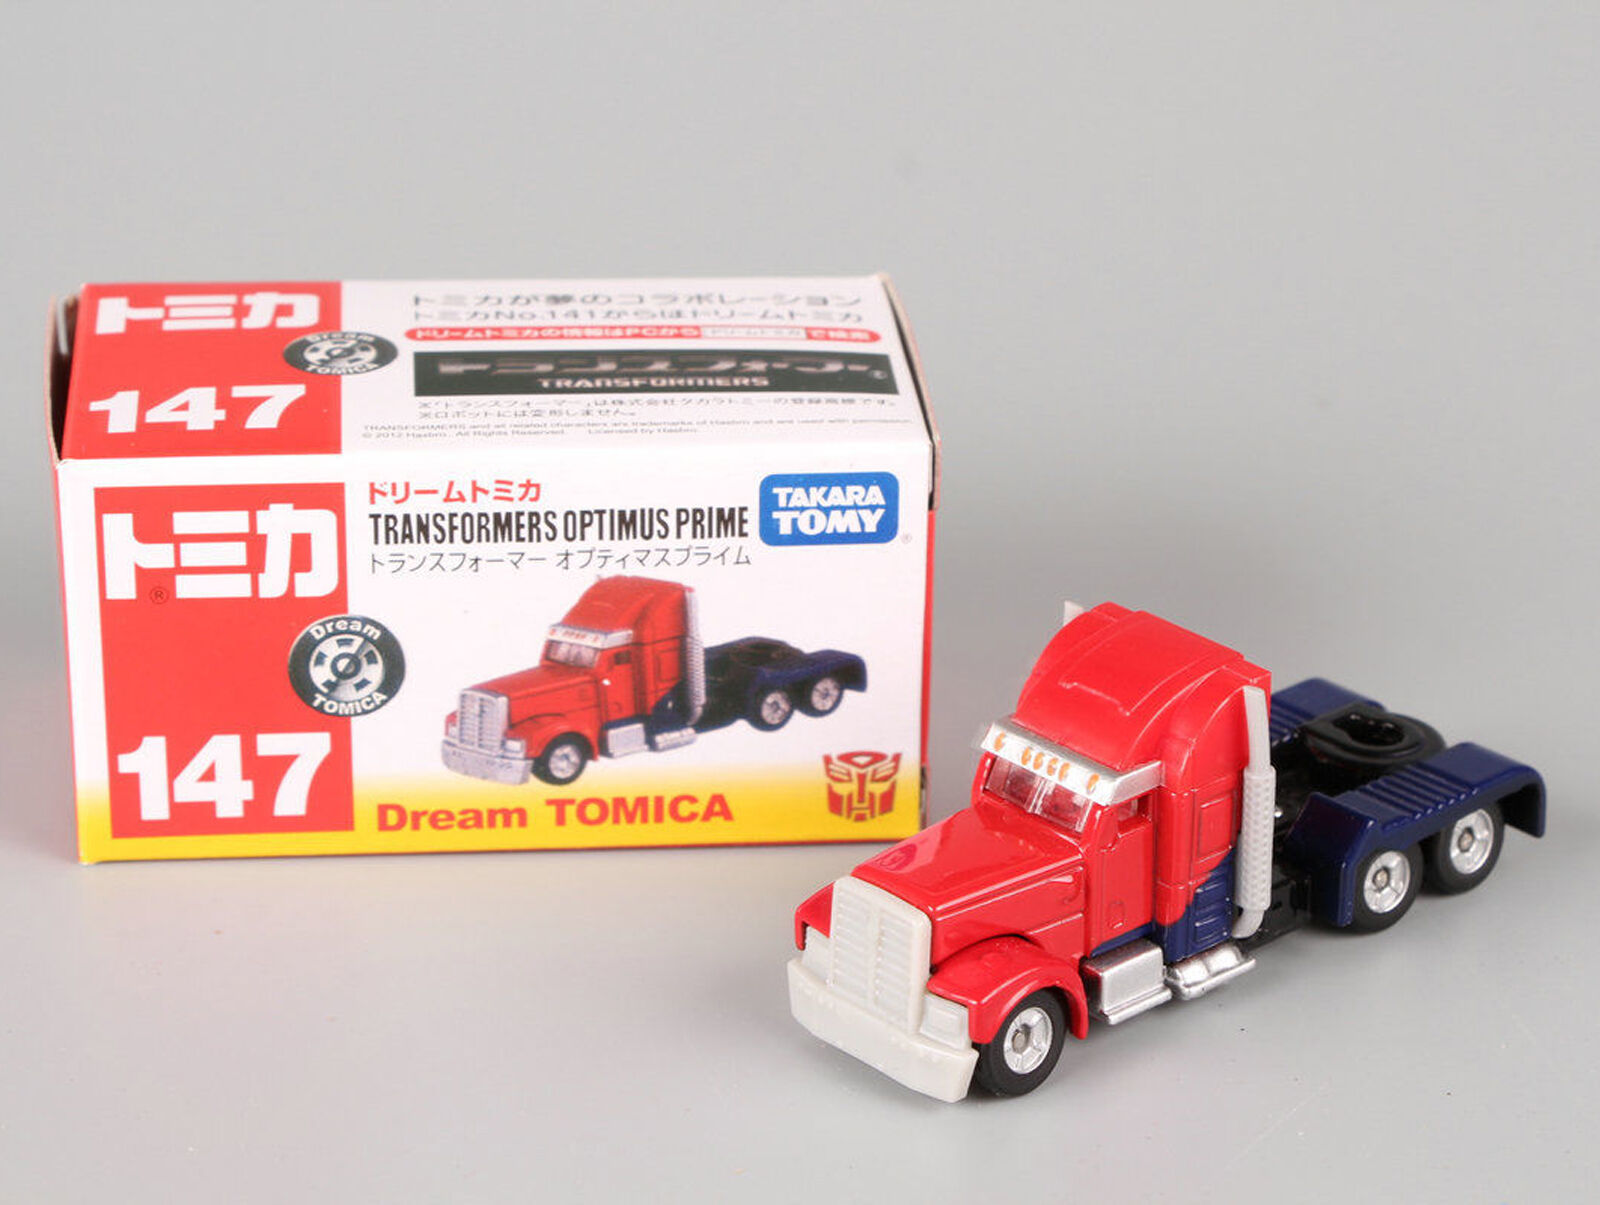 Takara Tomy Dream Tomica 147 Transformers Optimus Prime Metal Toy Initial D Skyline Gt Rr32 No 141 Car New In Box 1 Of 3free Shipping